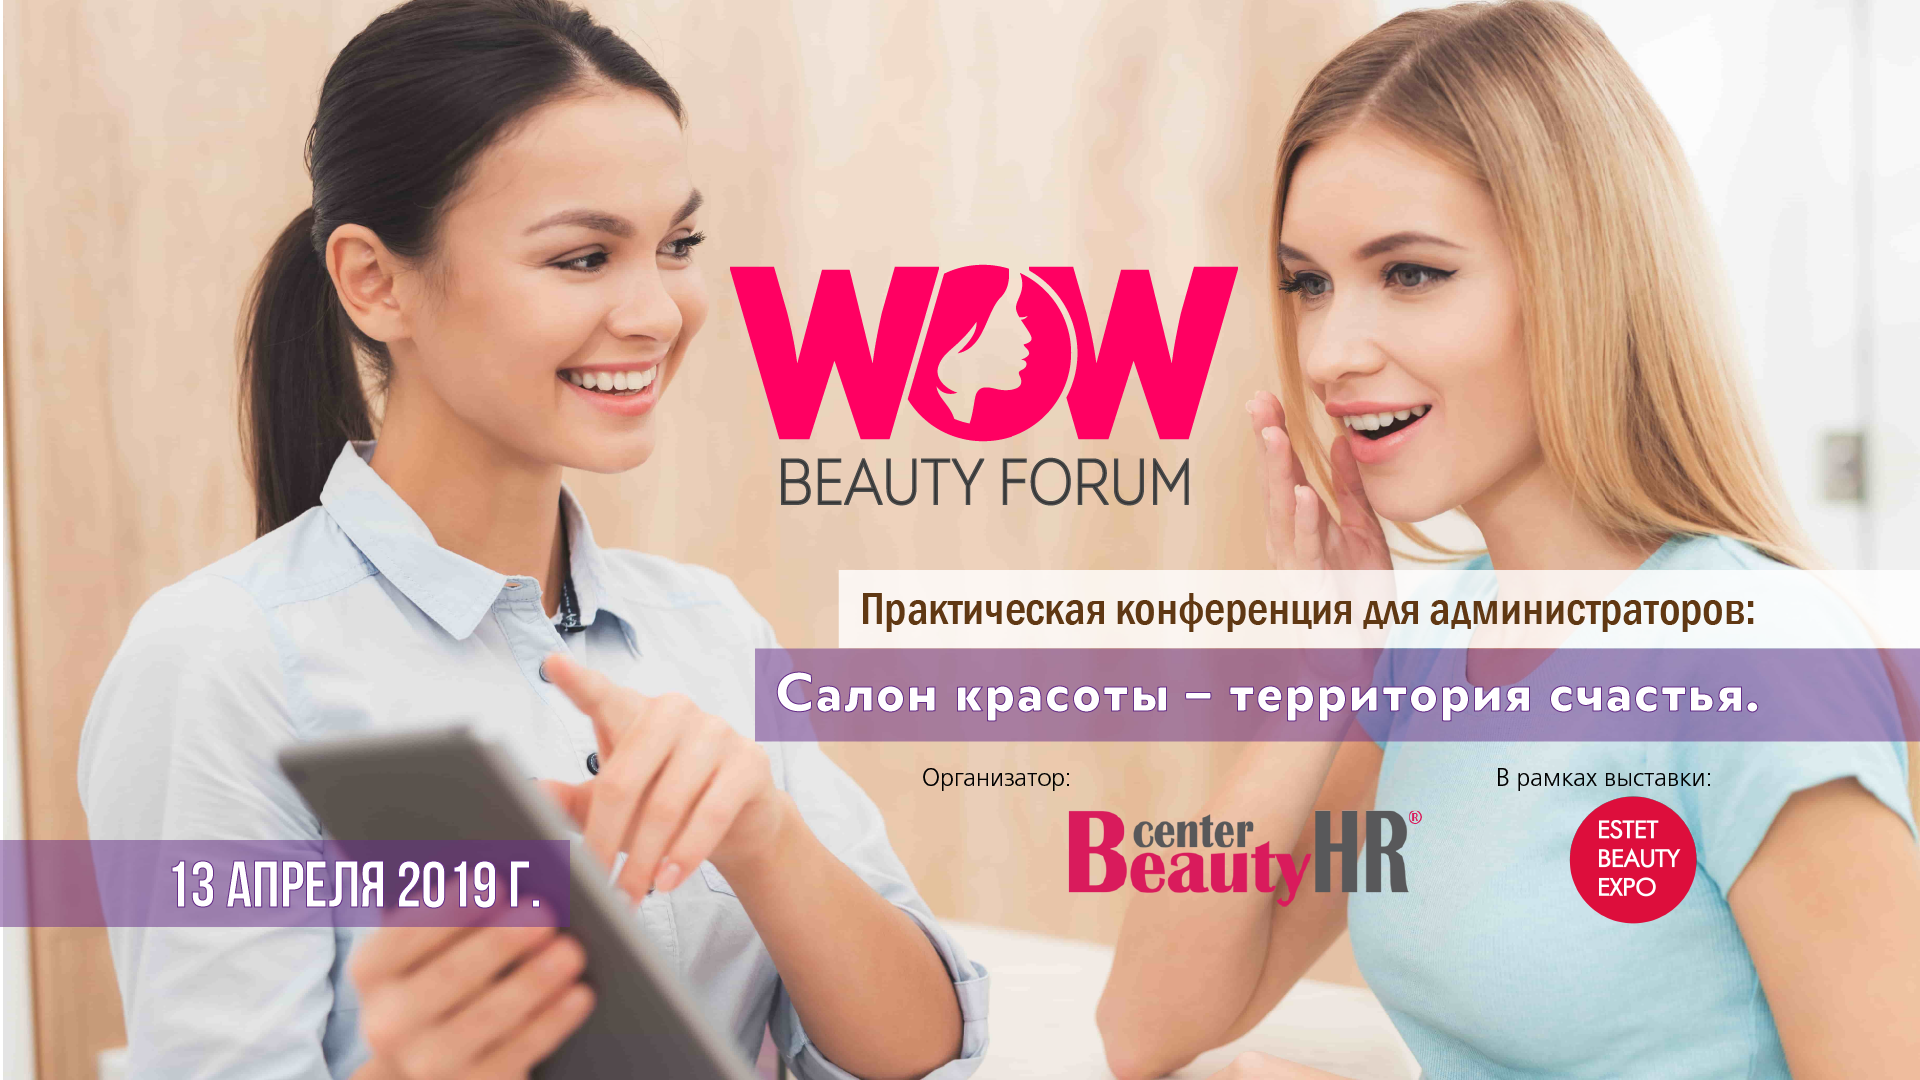 13-апреля_WOW-Beauty-Forum-для-администраторов.png